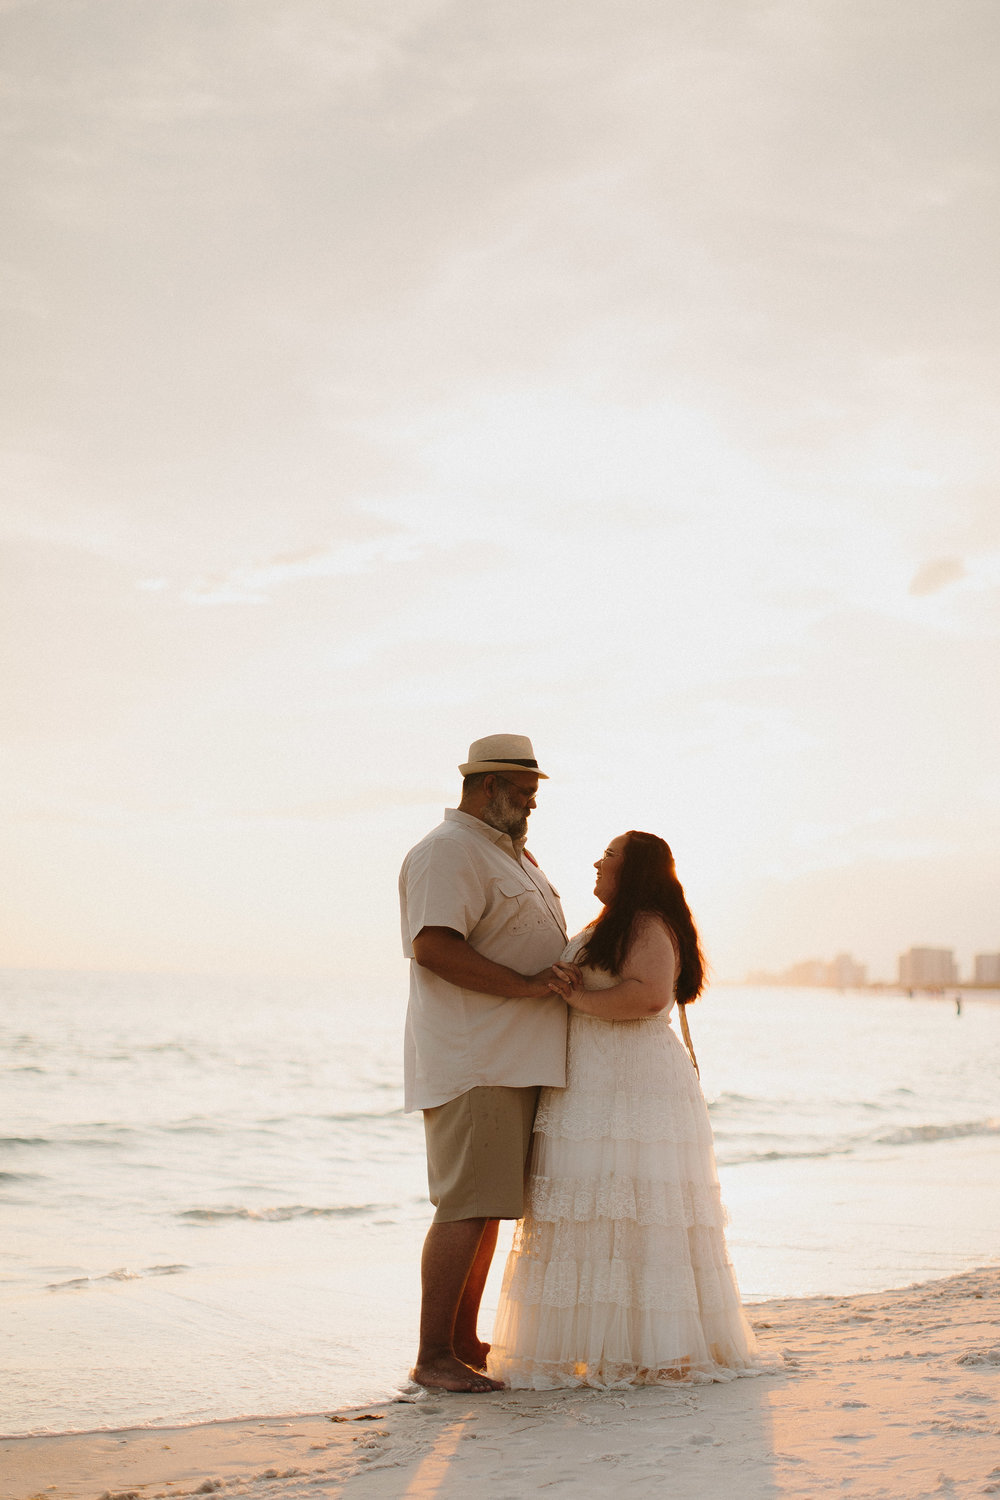 destin_sunset_beach_elopement_intimate_wedding_photographer_florida_documentary_1307.jpg